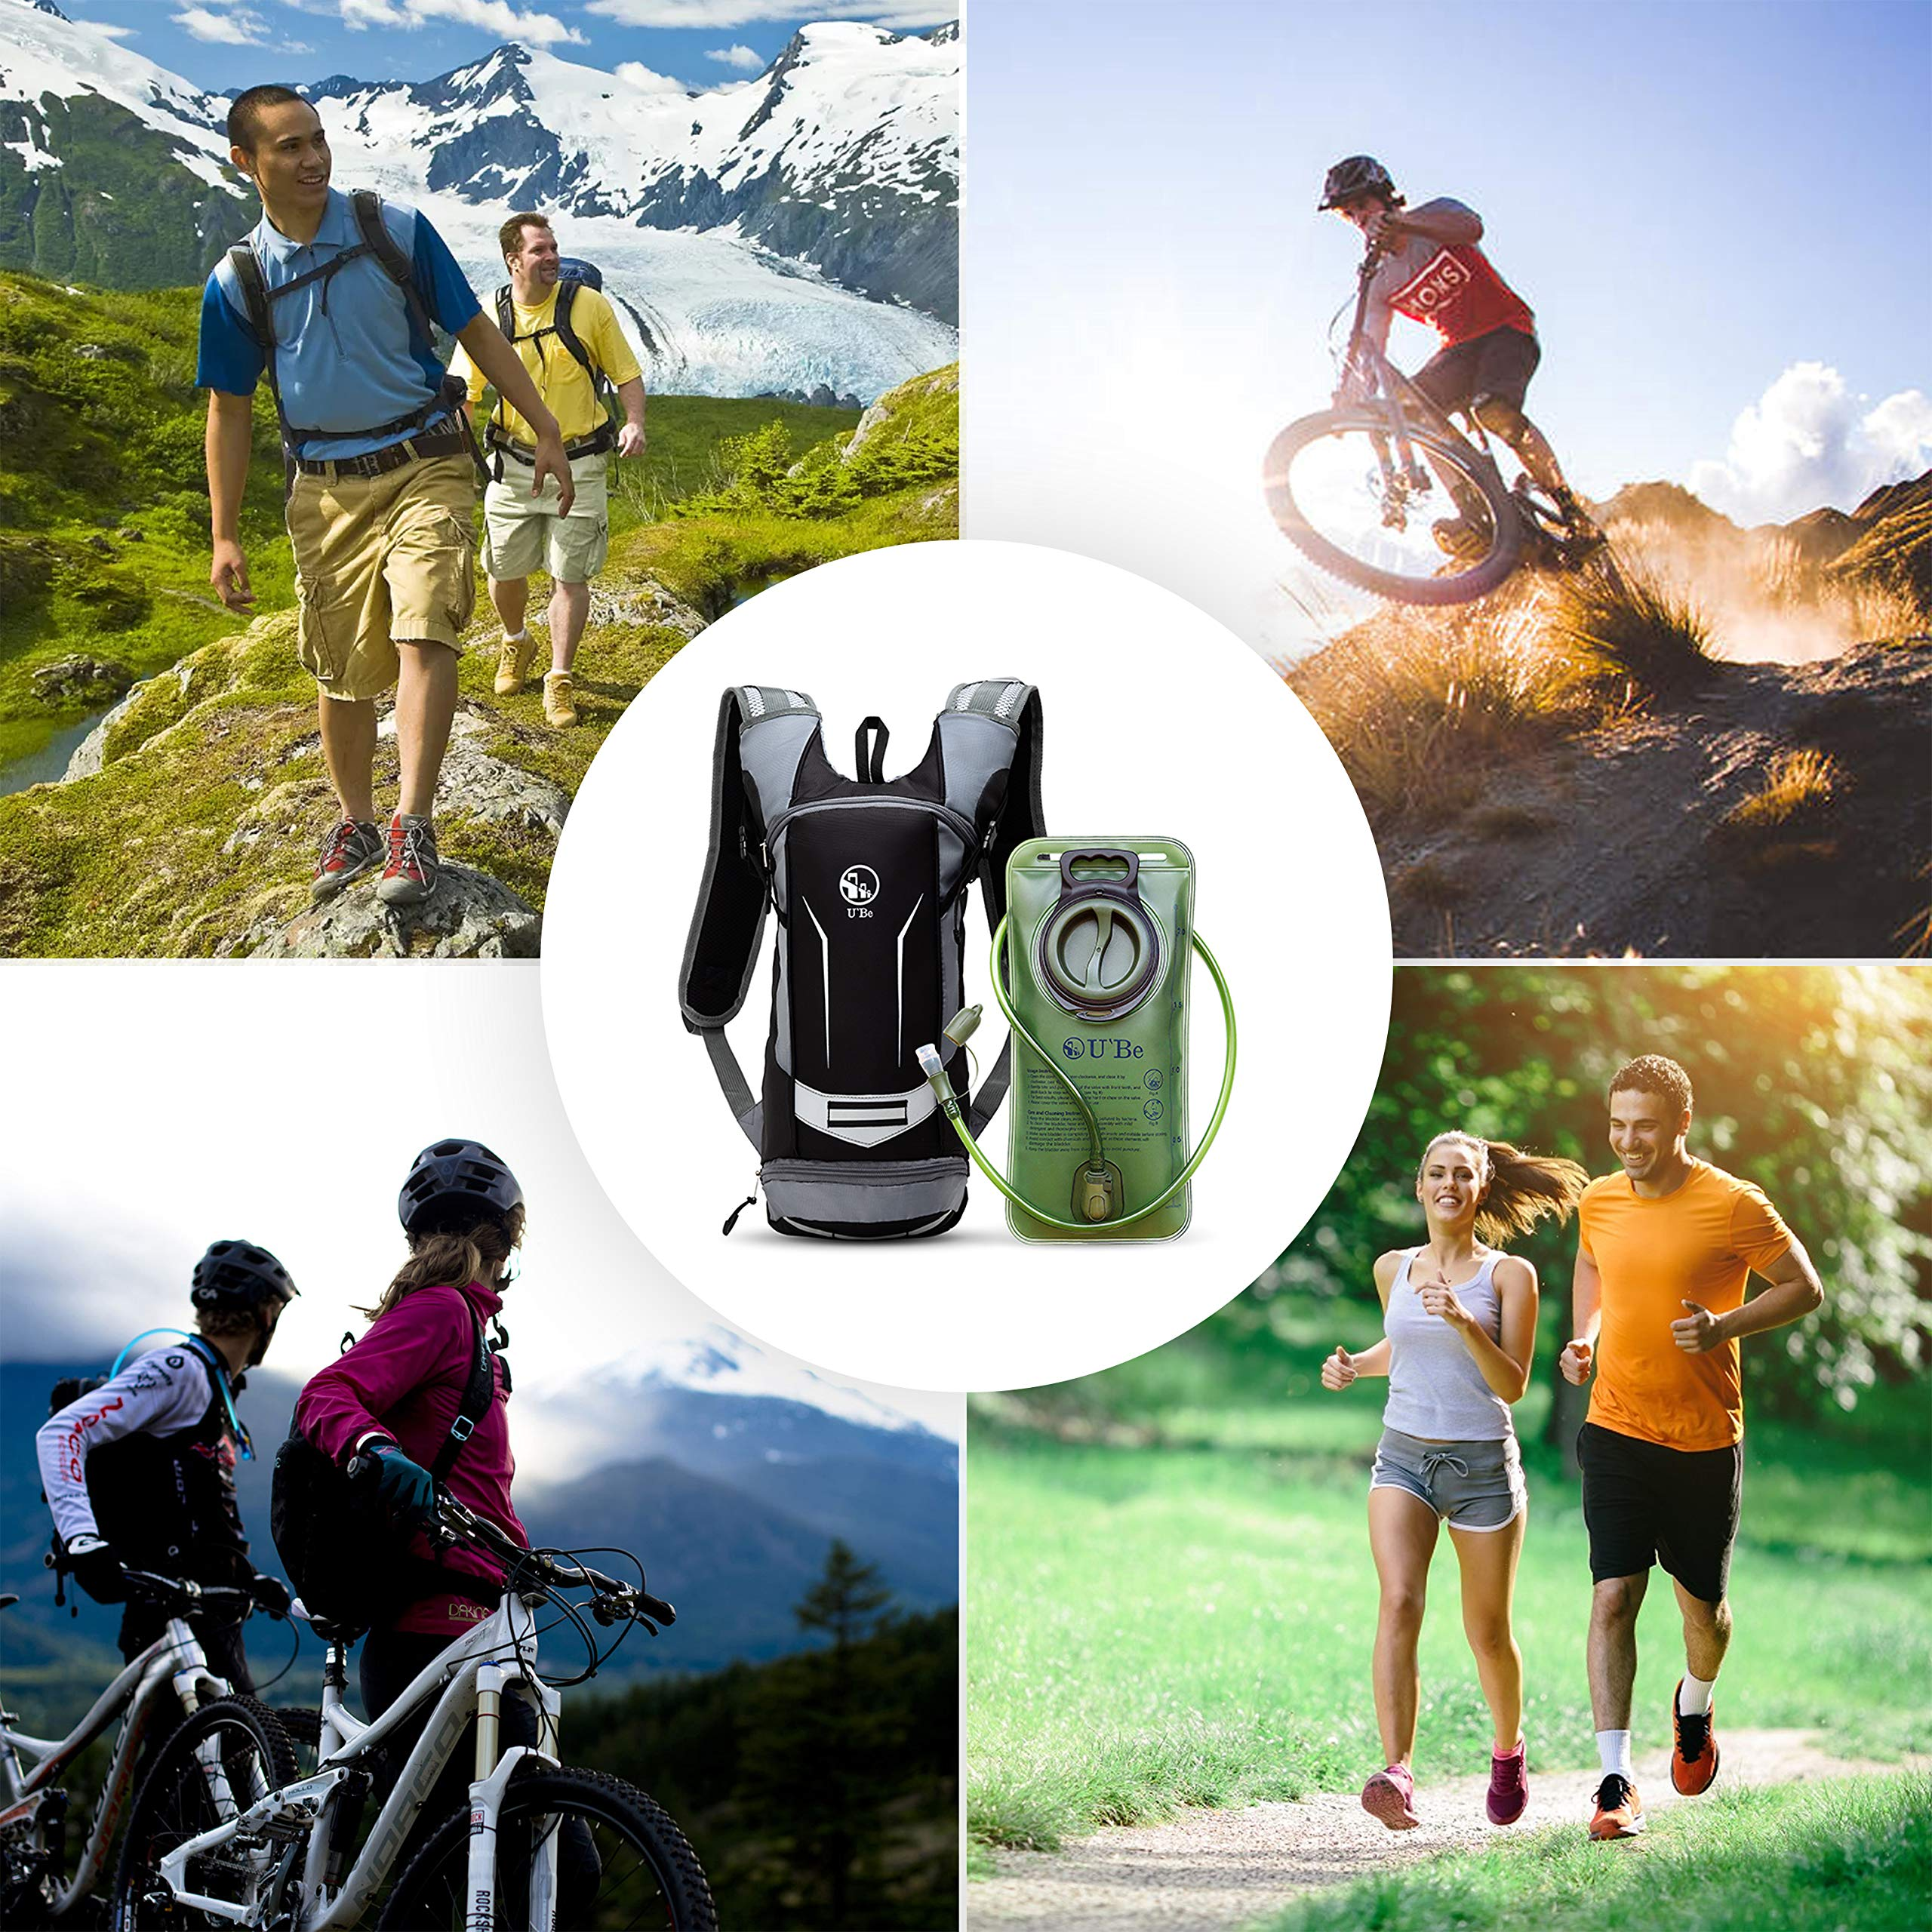 U`Be Hydration Pack - Hydration Backpack - Camel Pack Water Backpack with Insulated 2l Bladder for Women Men Kids Backpacking - Small Lightweight Water Reservoir for Running Hiking Cycling by U`Be (Image #7)